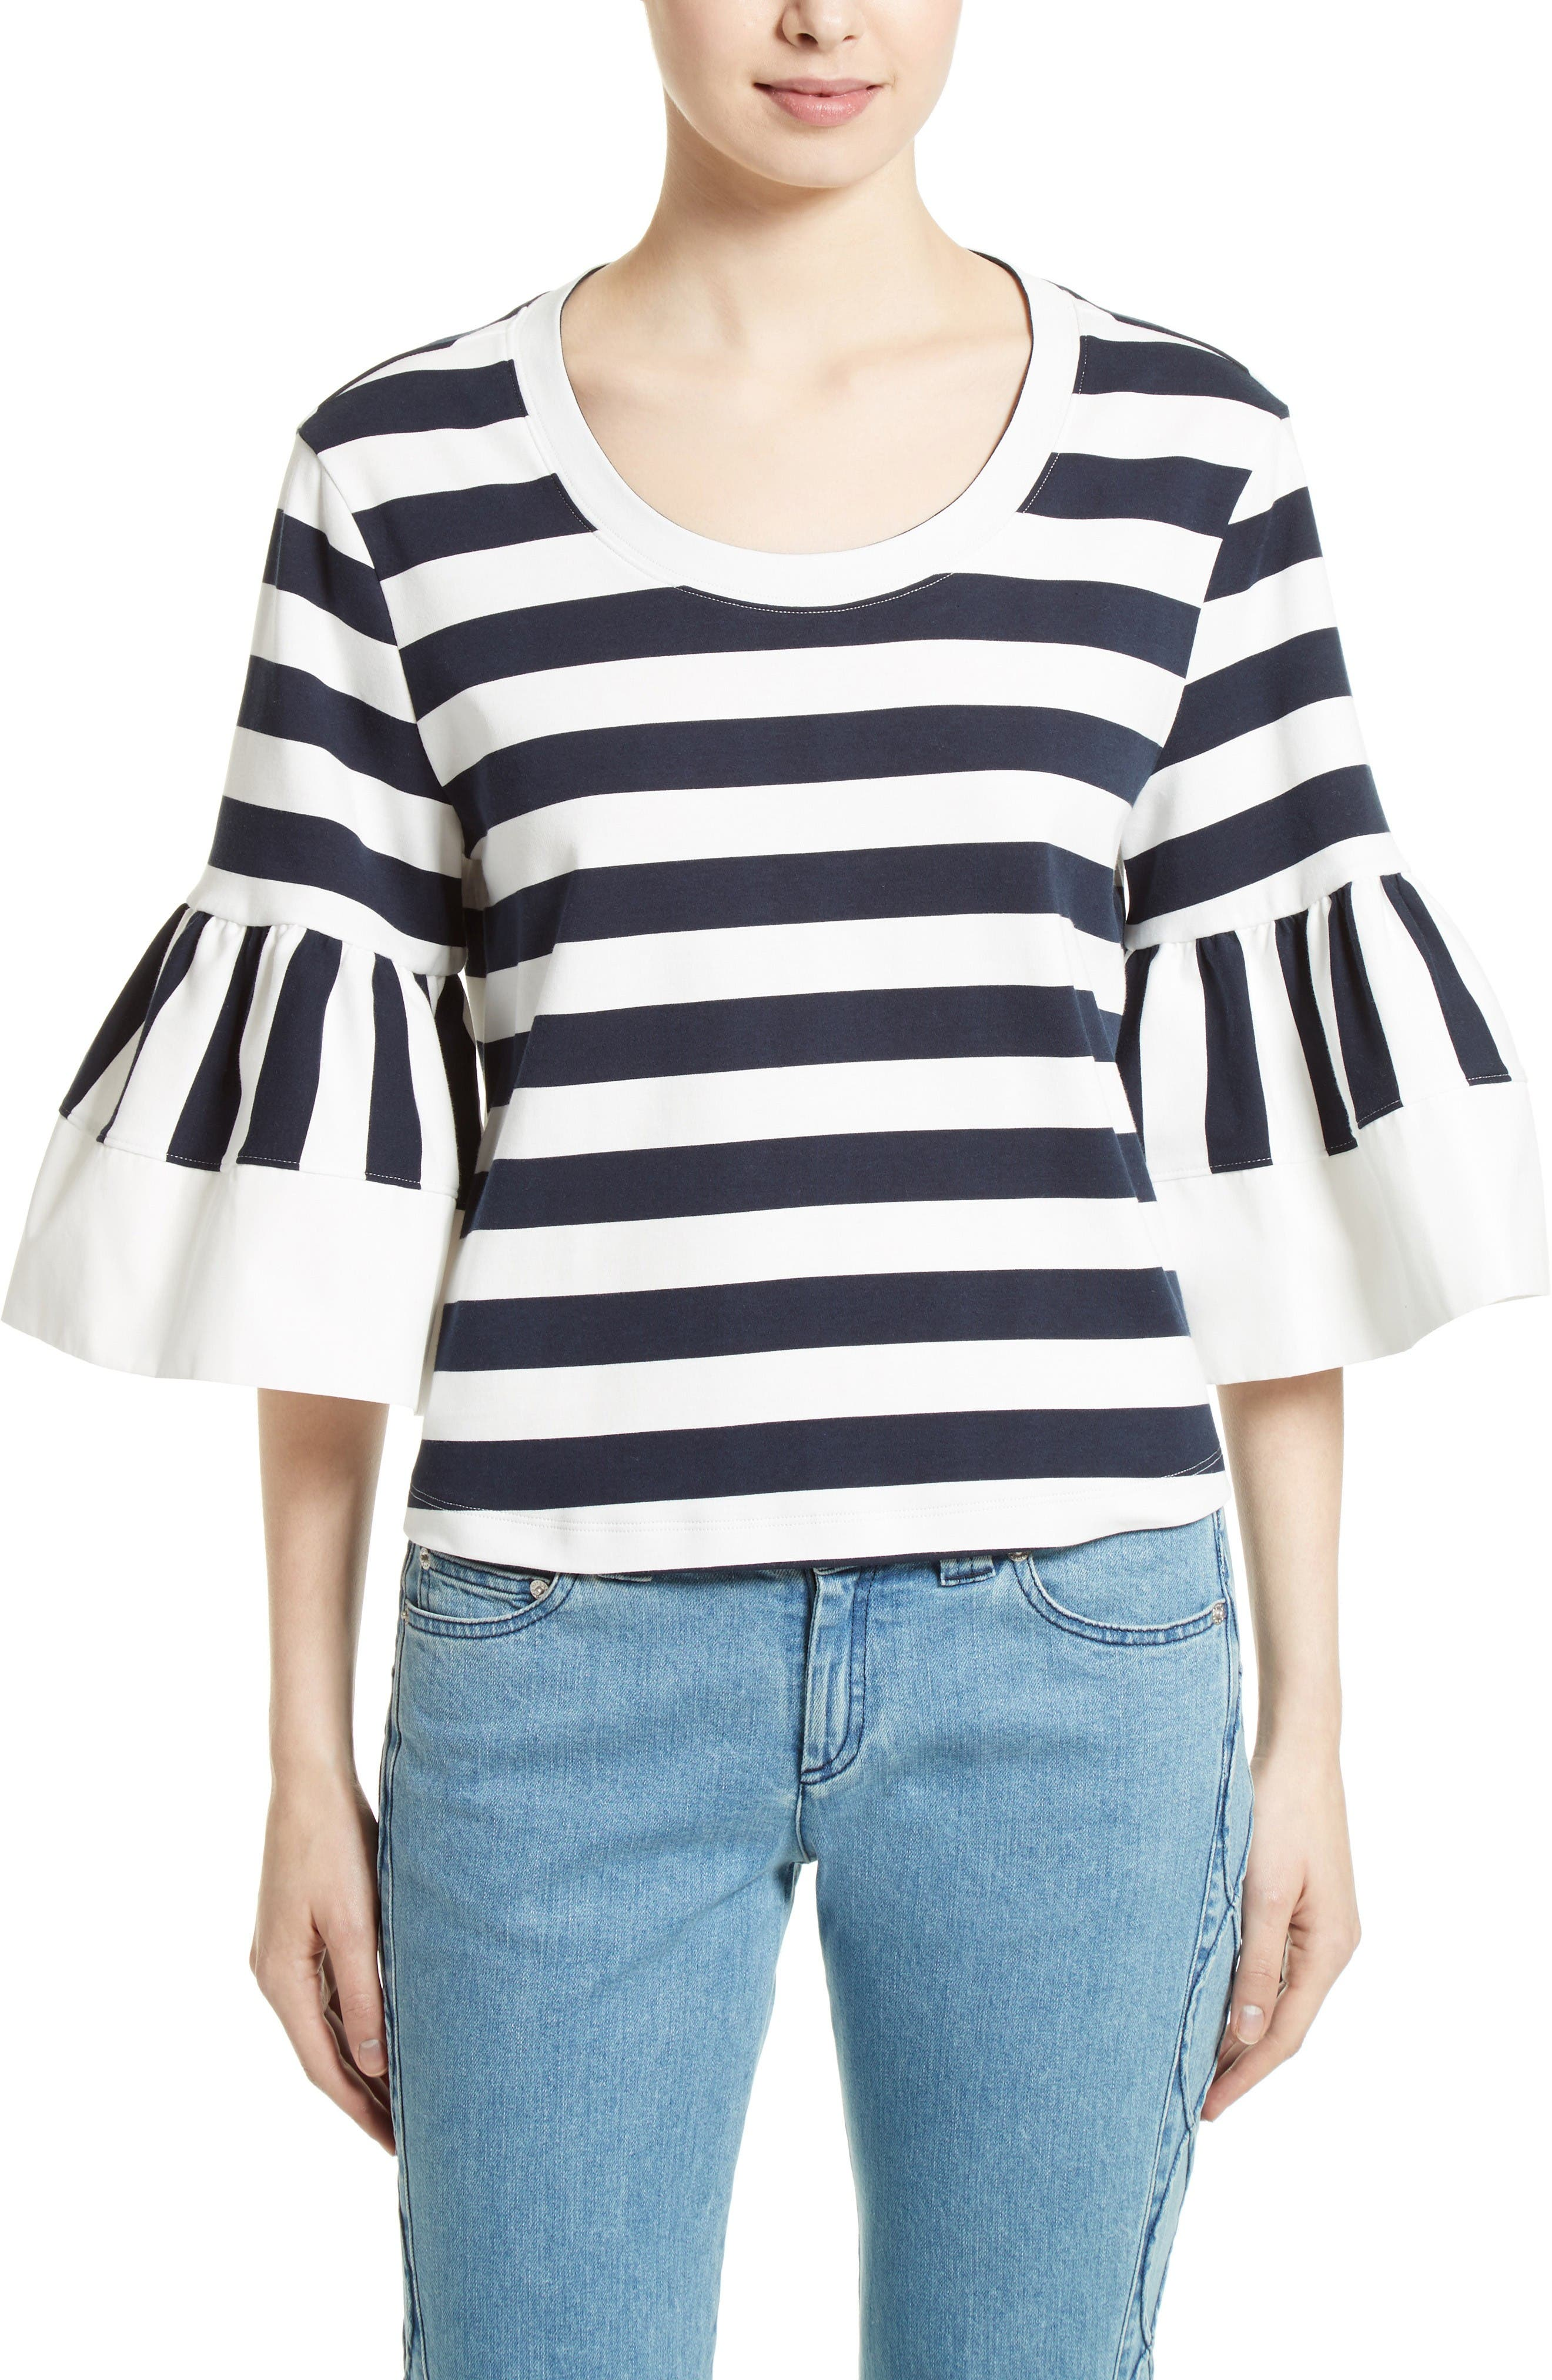 Alternate Image 1 Selected - See by Chloé Stripe Jersey Bell Sleeve Top (Nordstrom Exclusive)